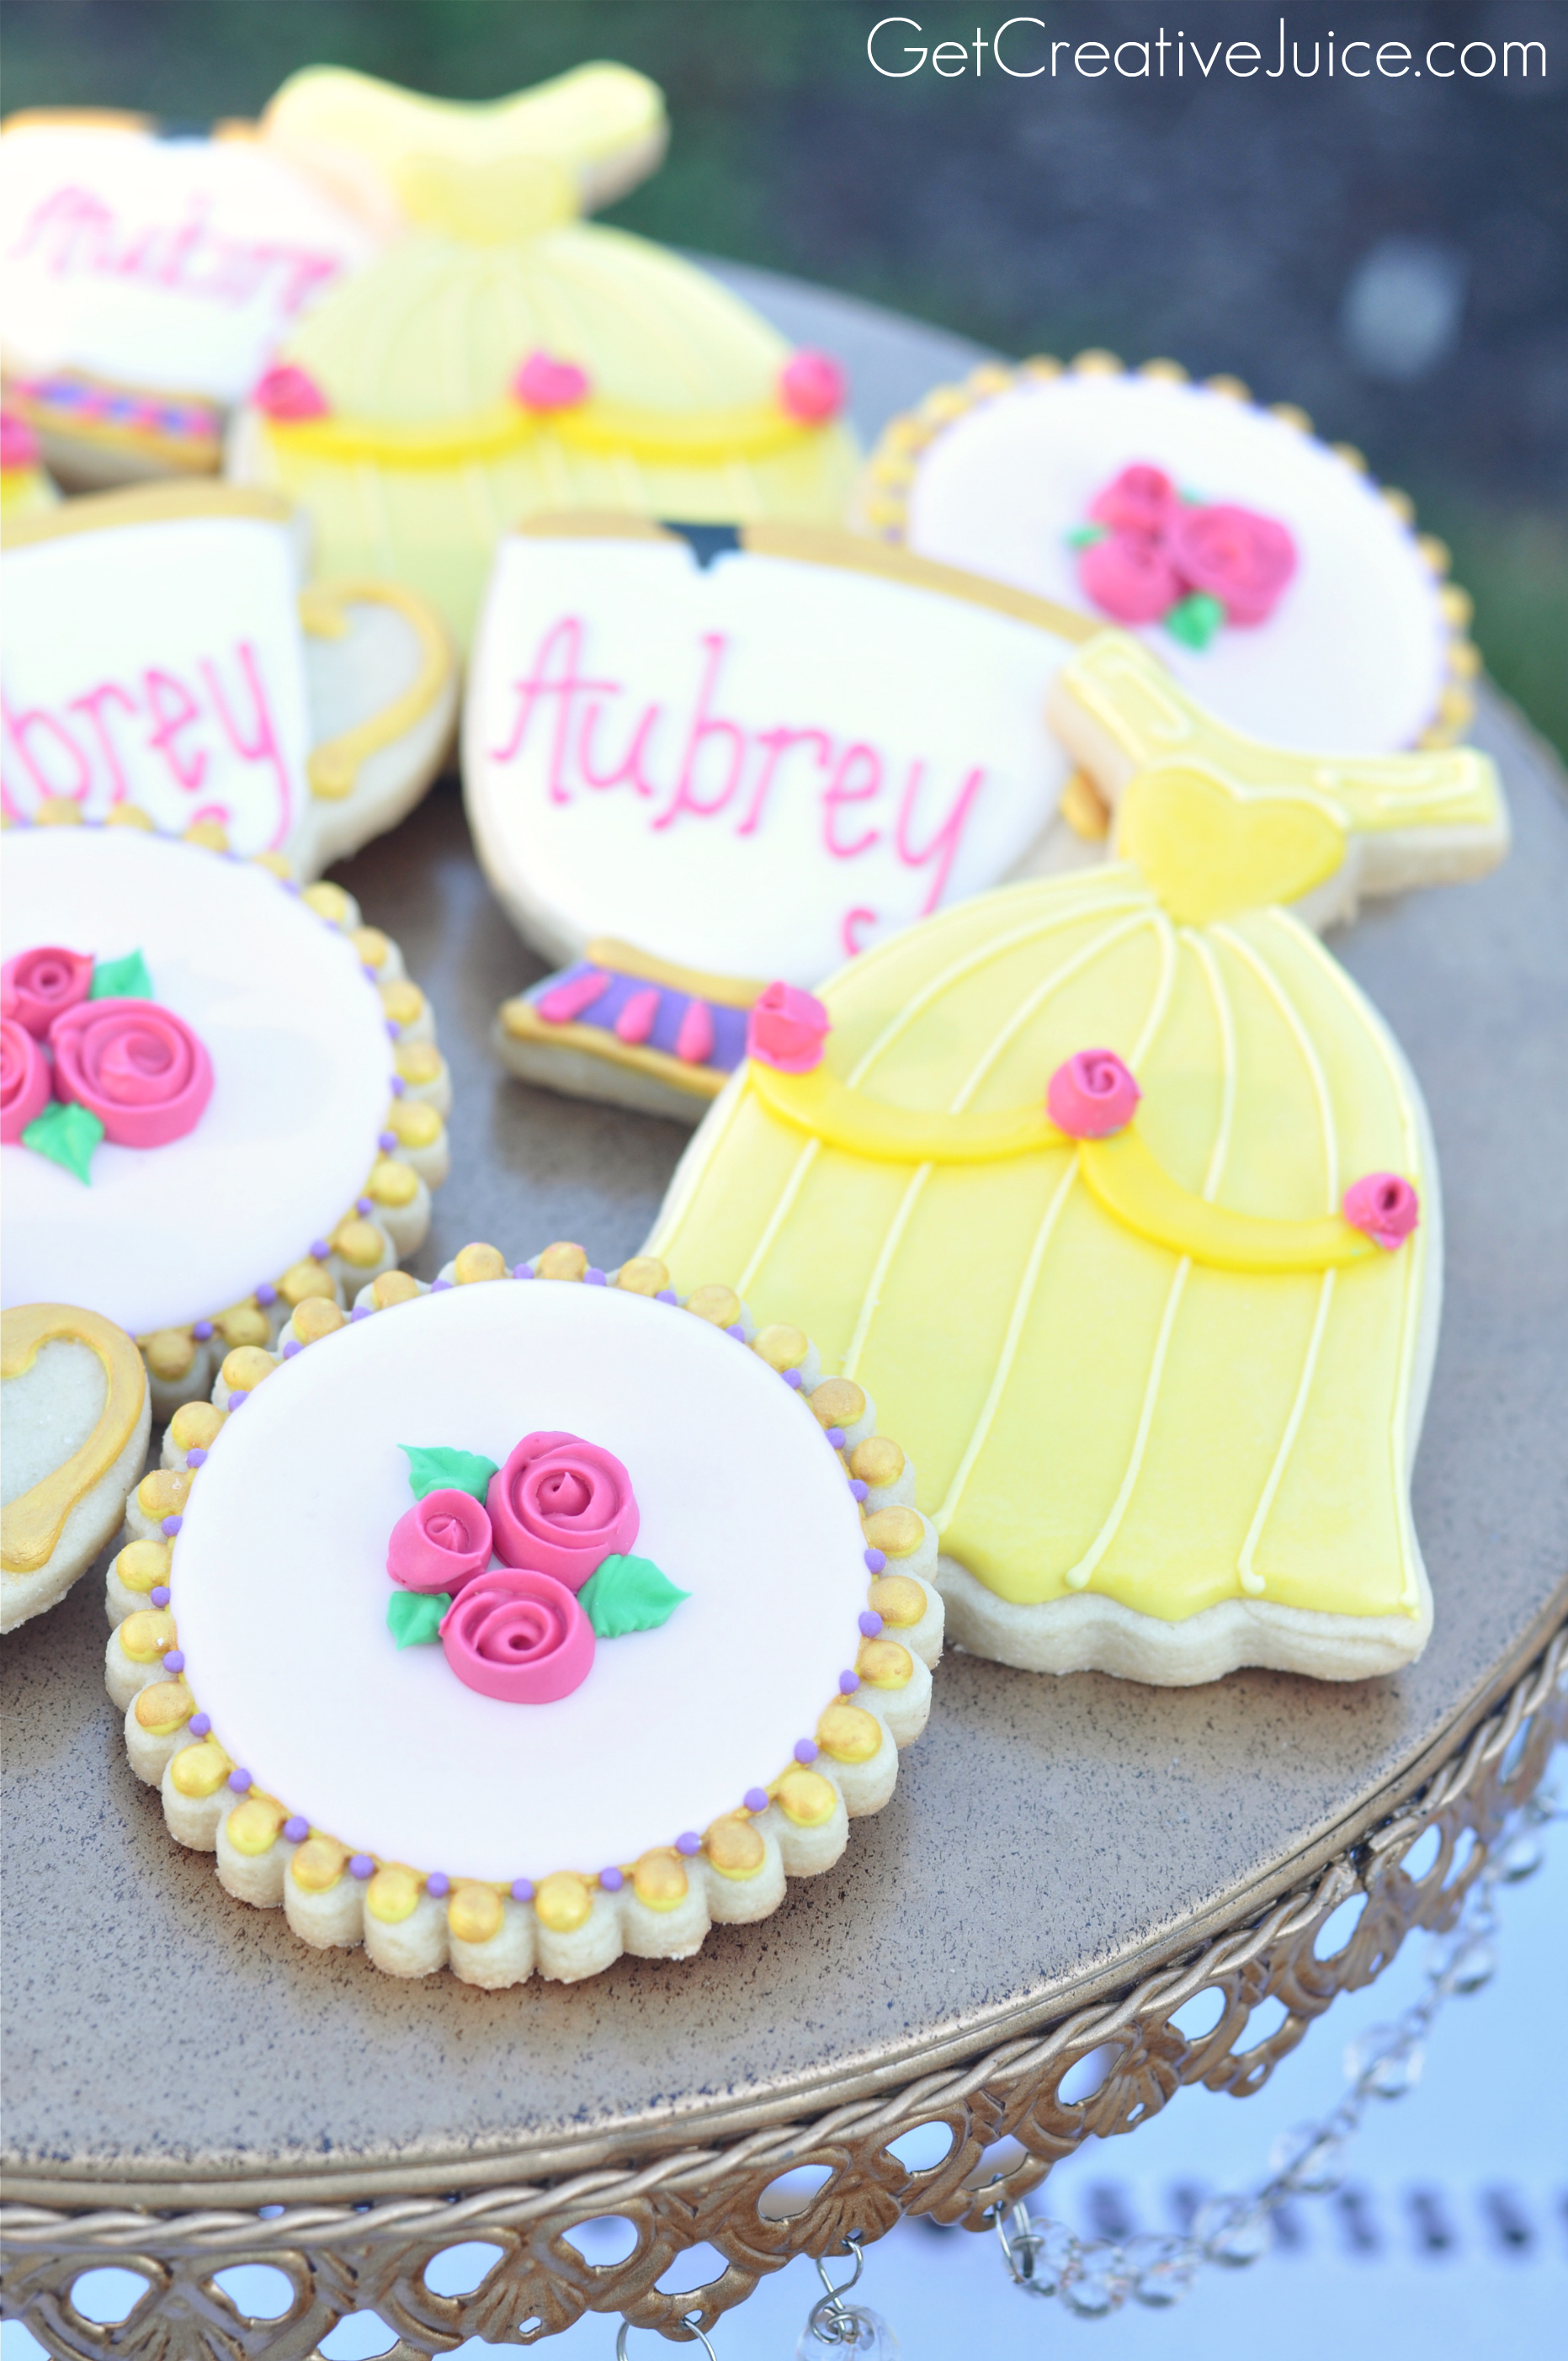 baby chairs at target chair covers for sporting events disney princess party with belle - part one creative juice